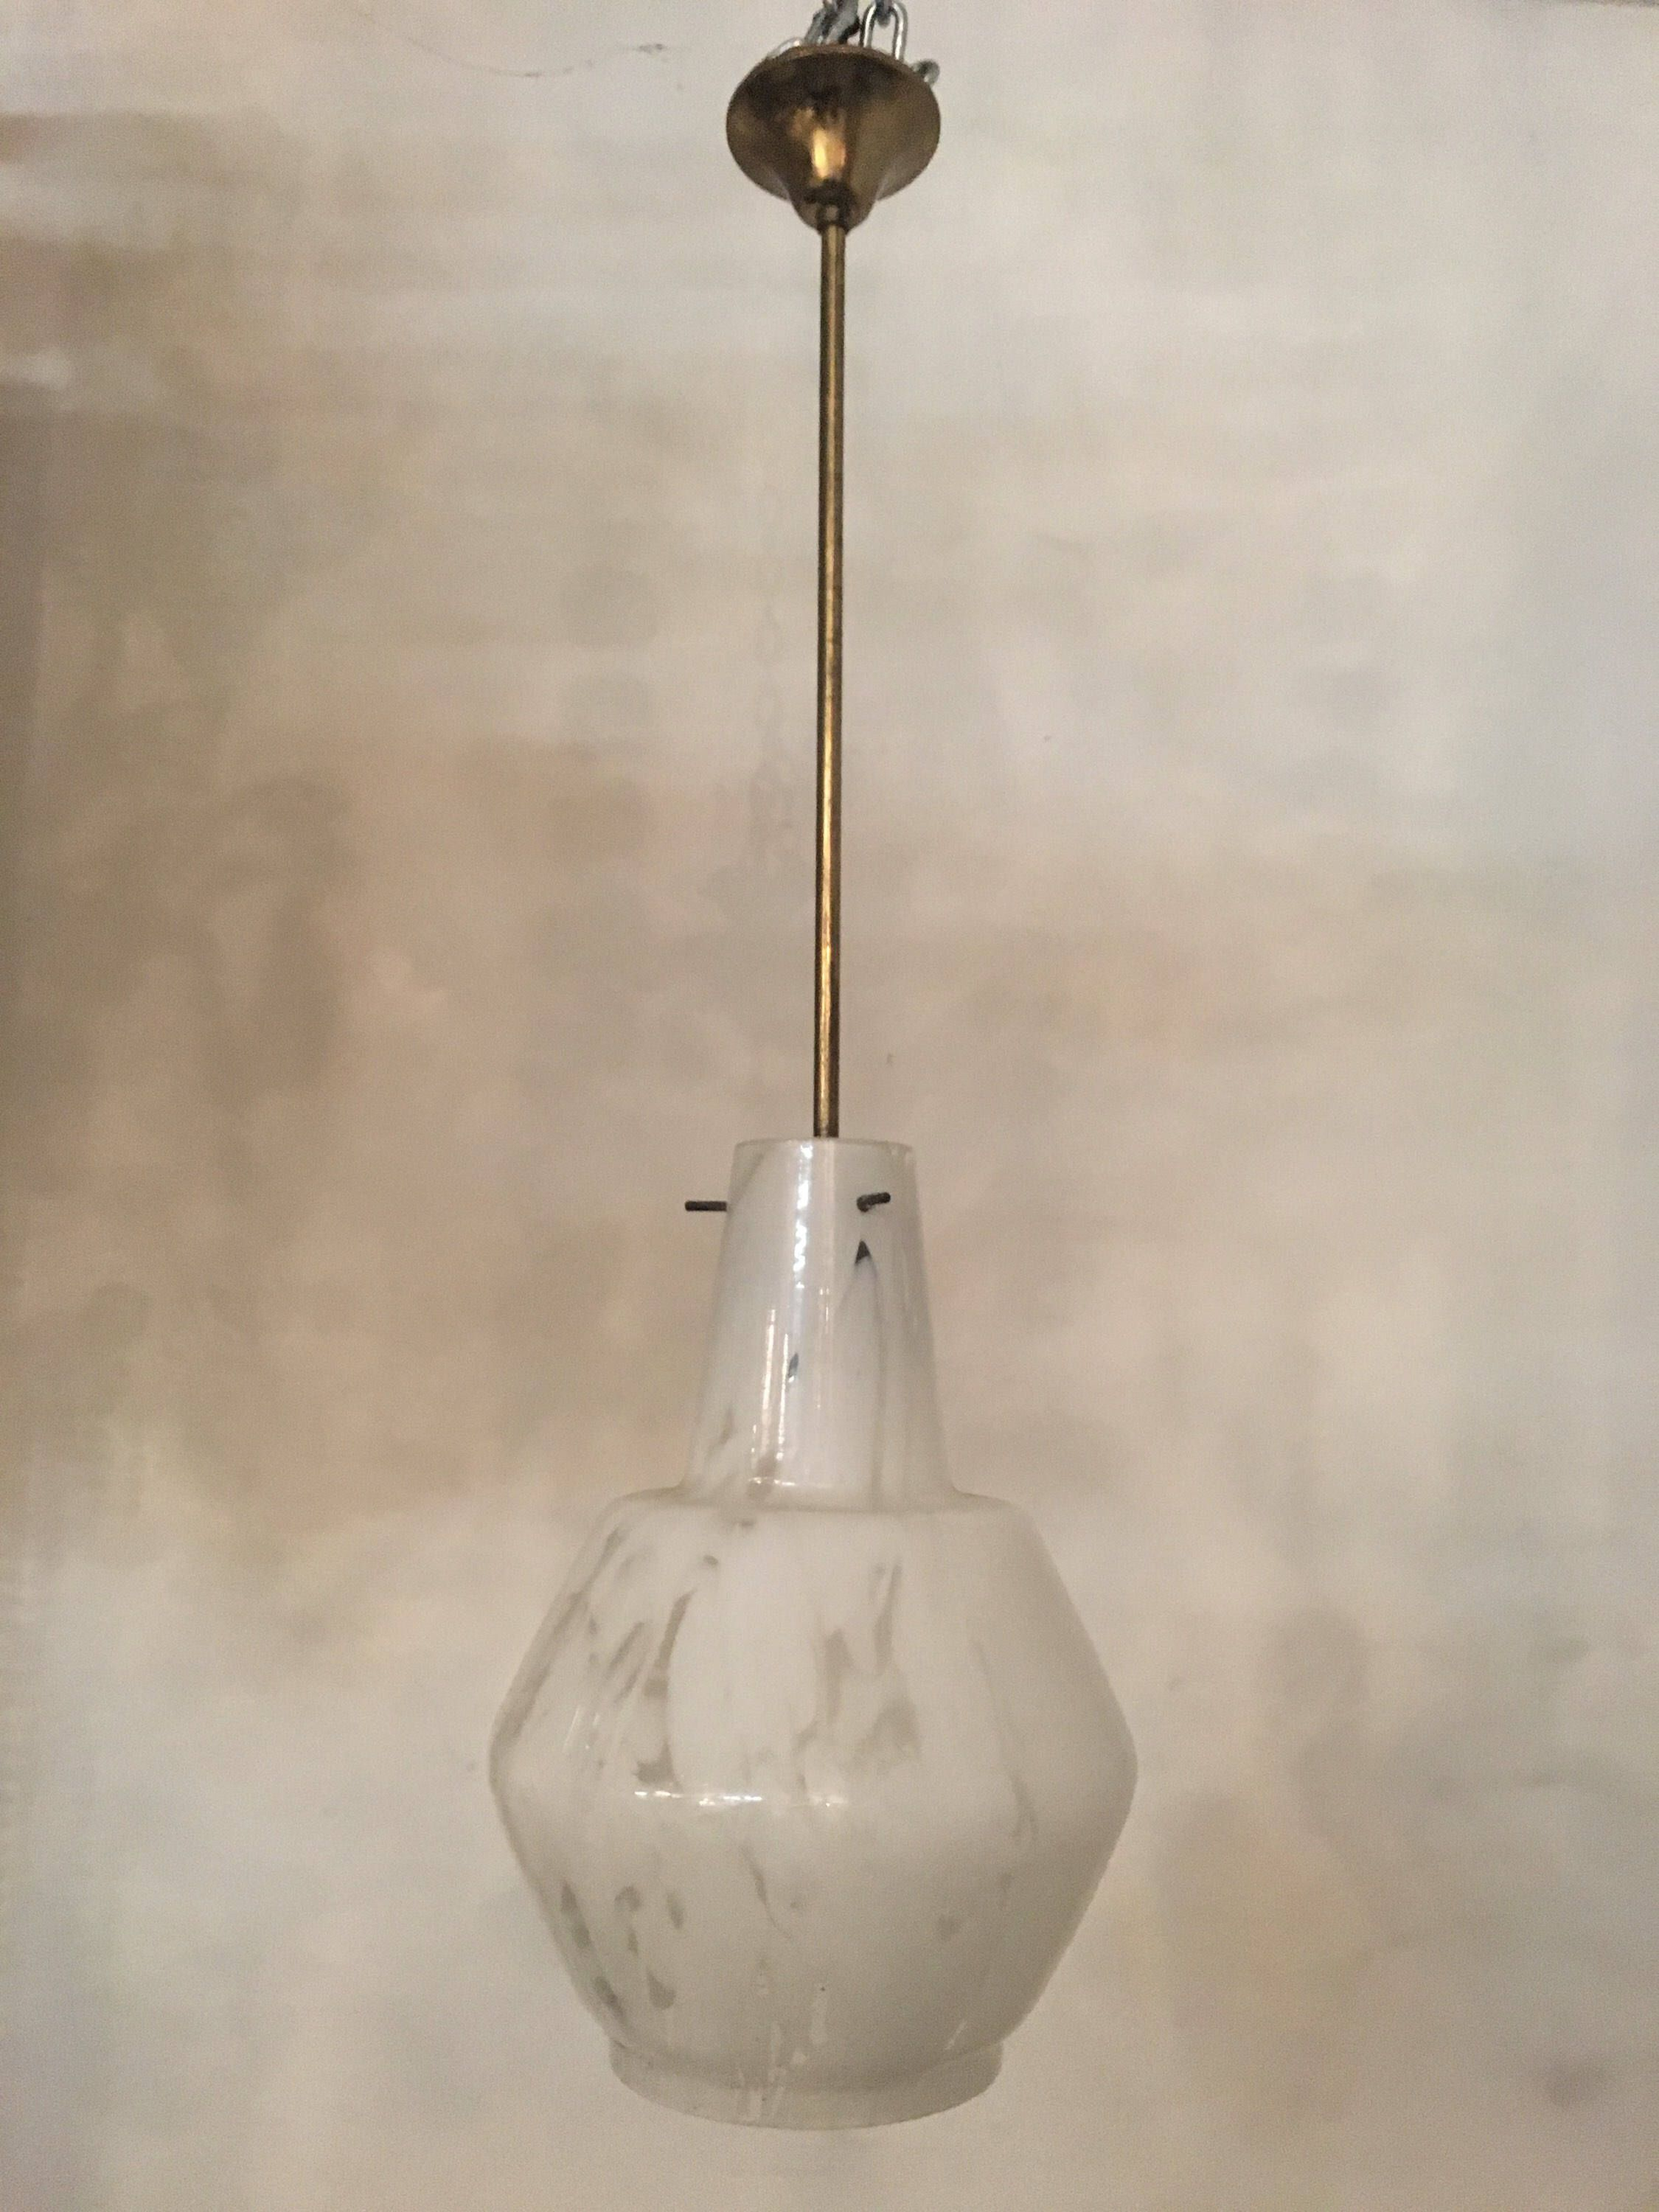 Chandelier Lighting Murano Mazzega Midcentury Ceiling Light Without Wiring Pendant Comp Usa